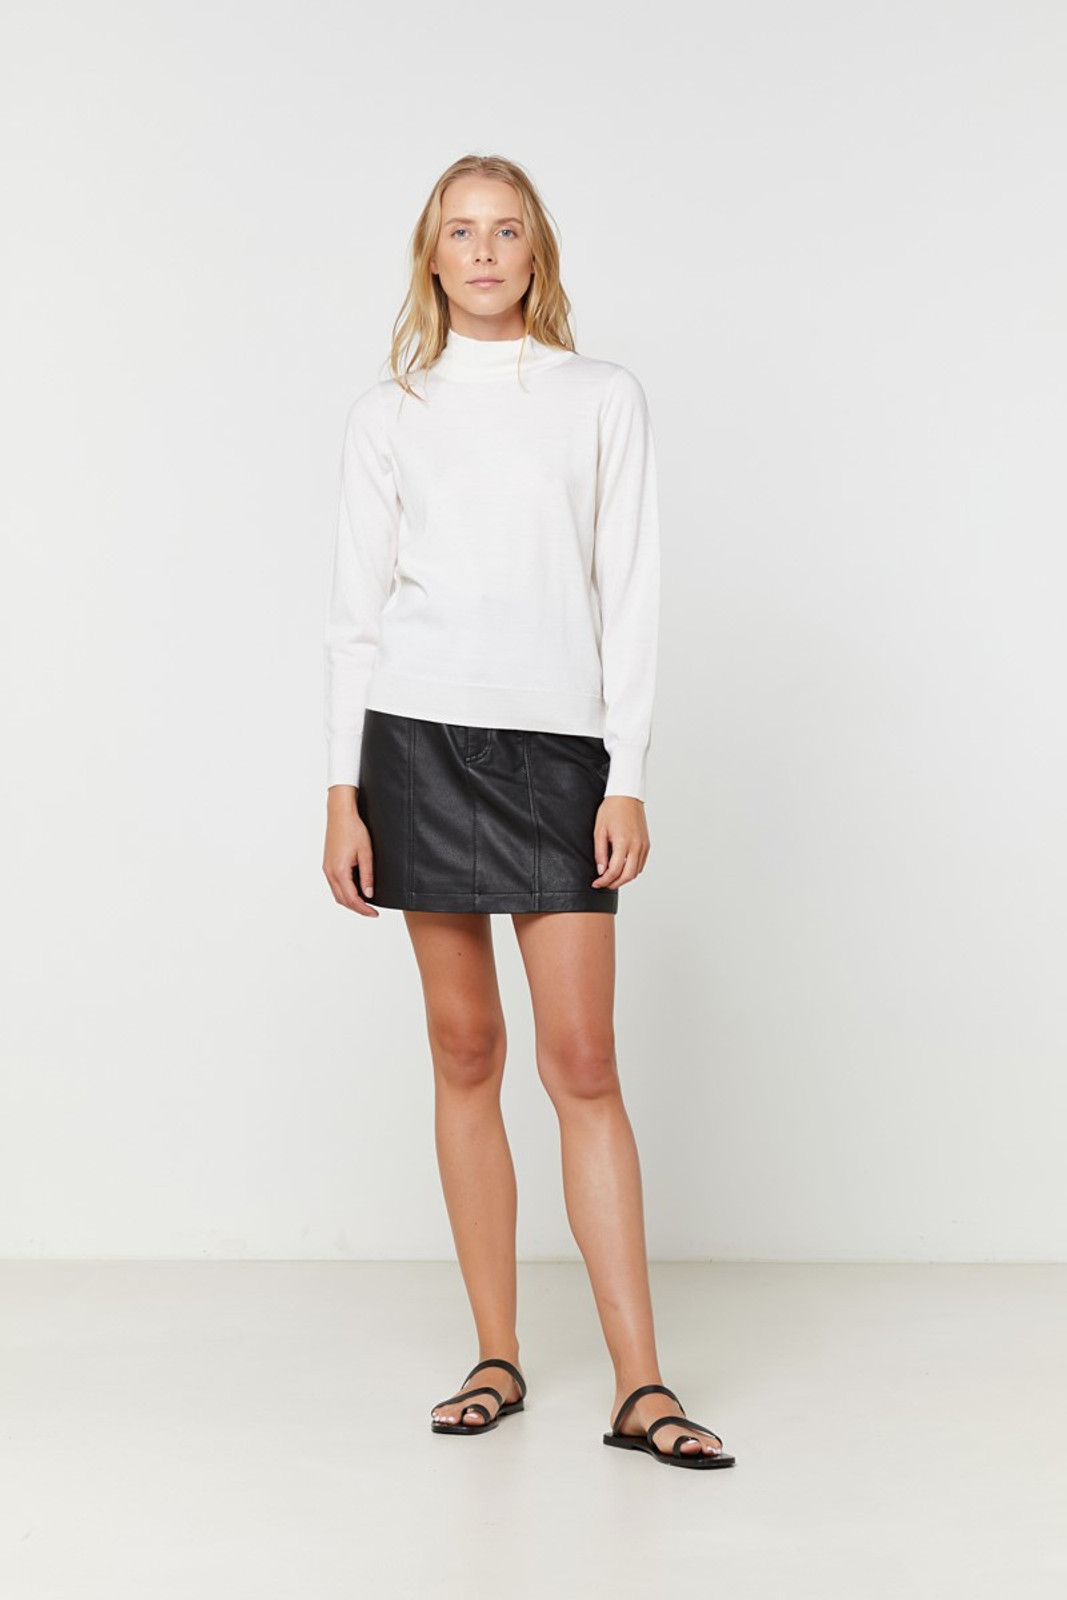 Elka Collective Rory Knit Neutrals  1